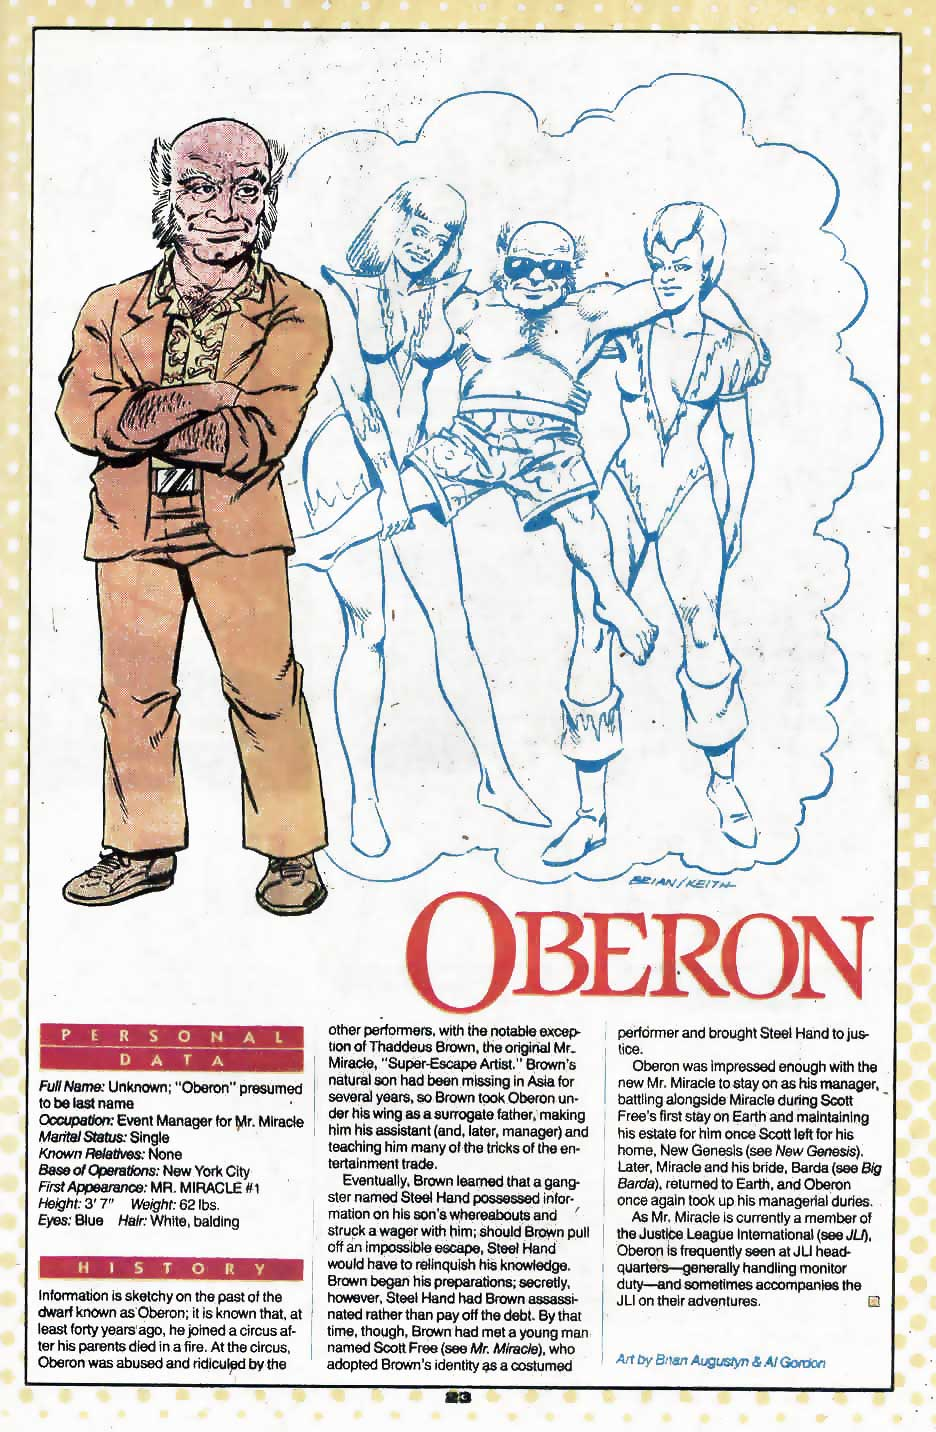 Oberon by Brian Augustyn and Al Gordon